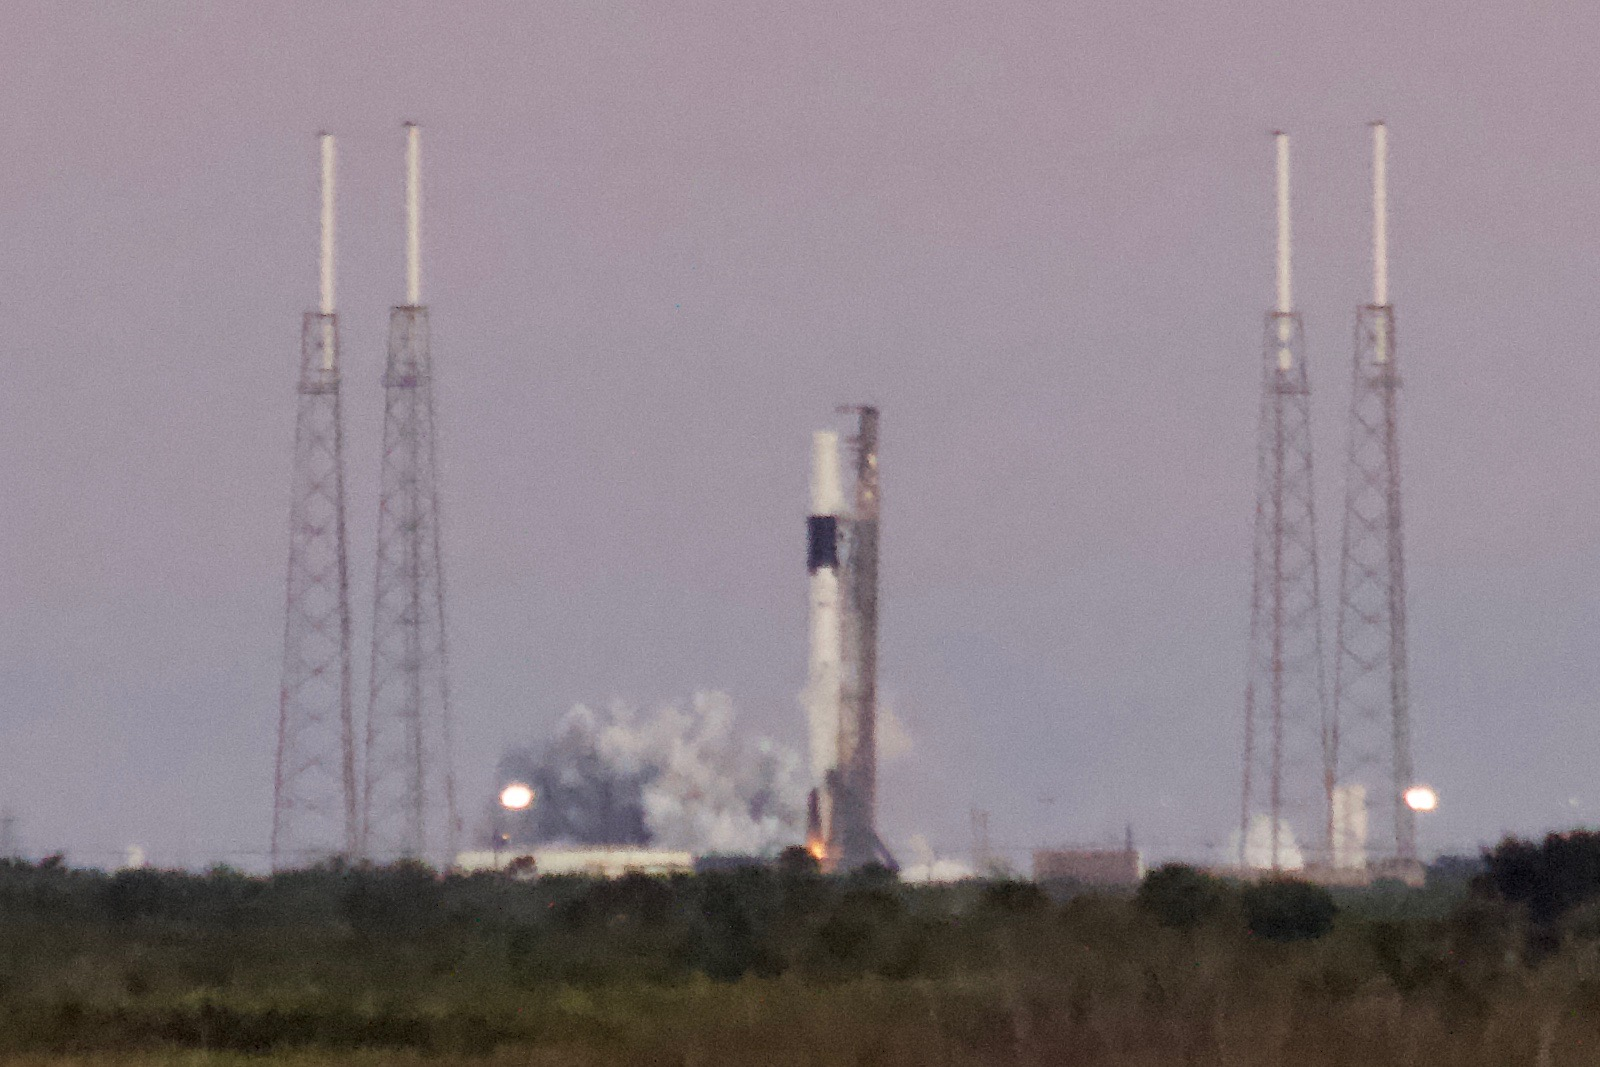 SpaceX test-fires Falcon 9 rocket for next space station cargo launch